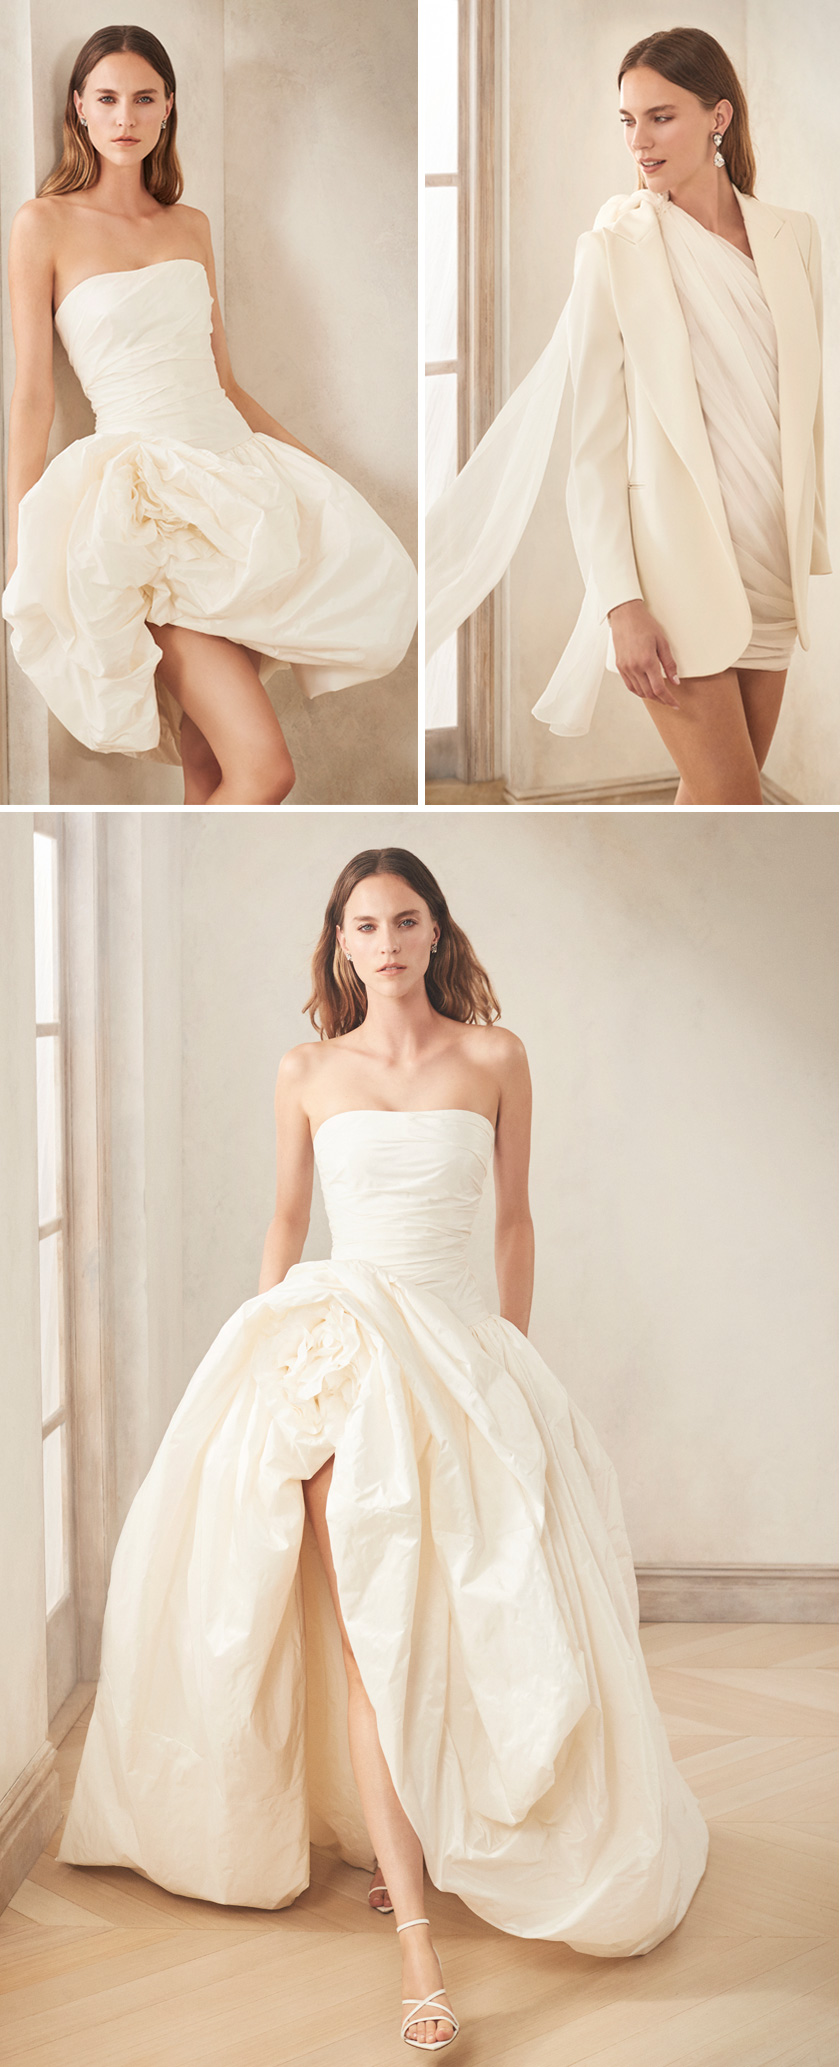 Oscar de la Renta Fall 2020 bridal collection in an off-white palette Perfect Wedding Magazine